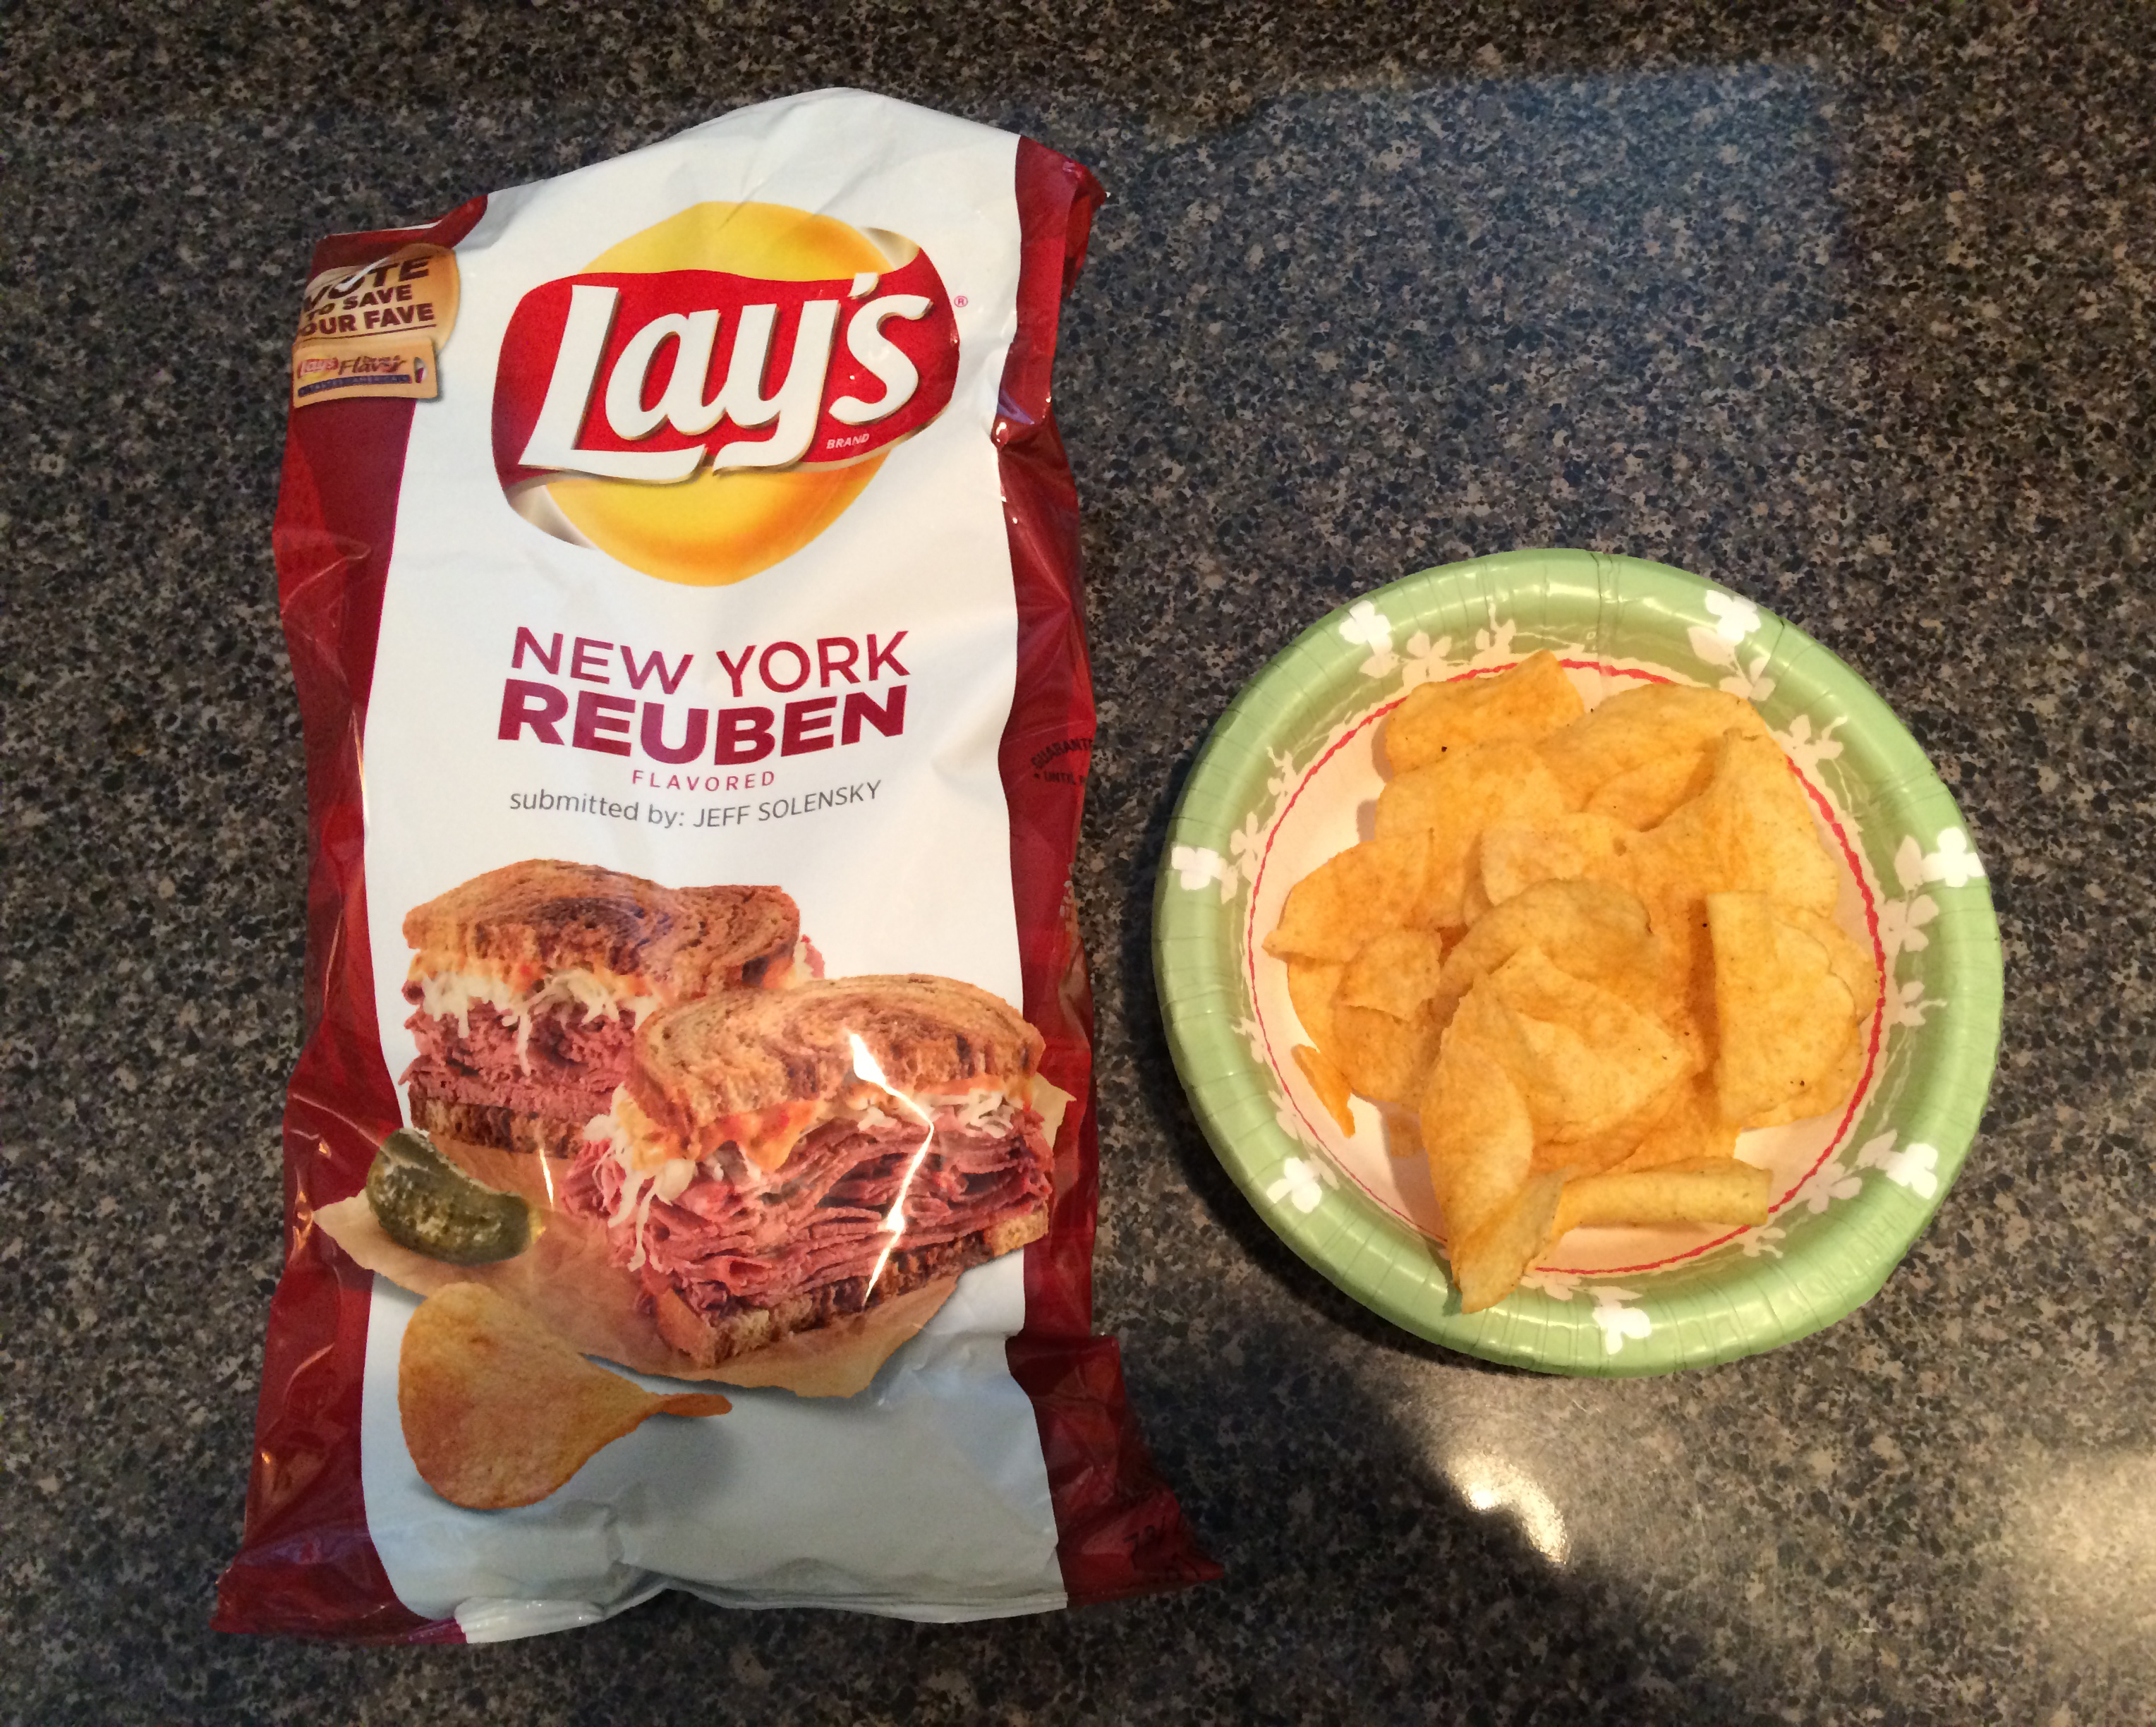 The #DoUsAFlavor New York Reuben chips had a slight tomato sauce taste to me.